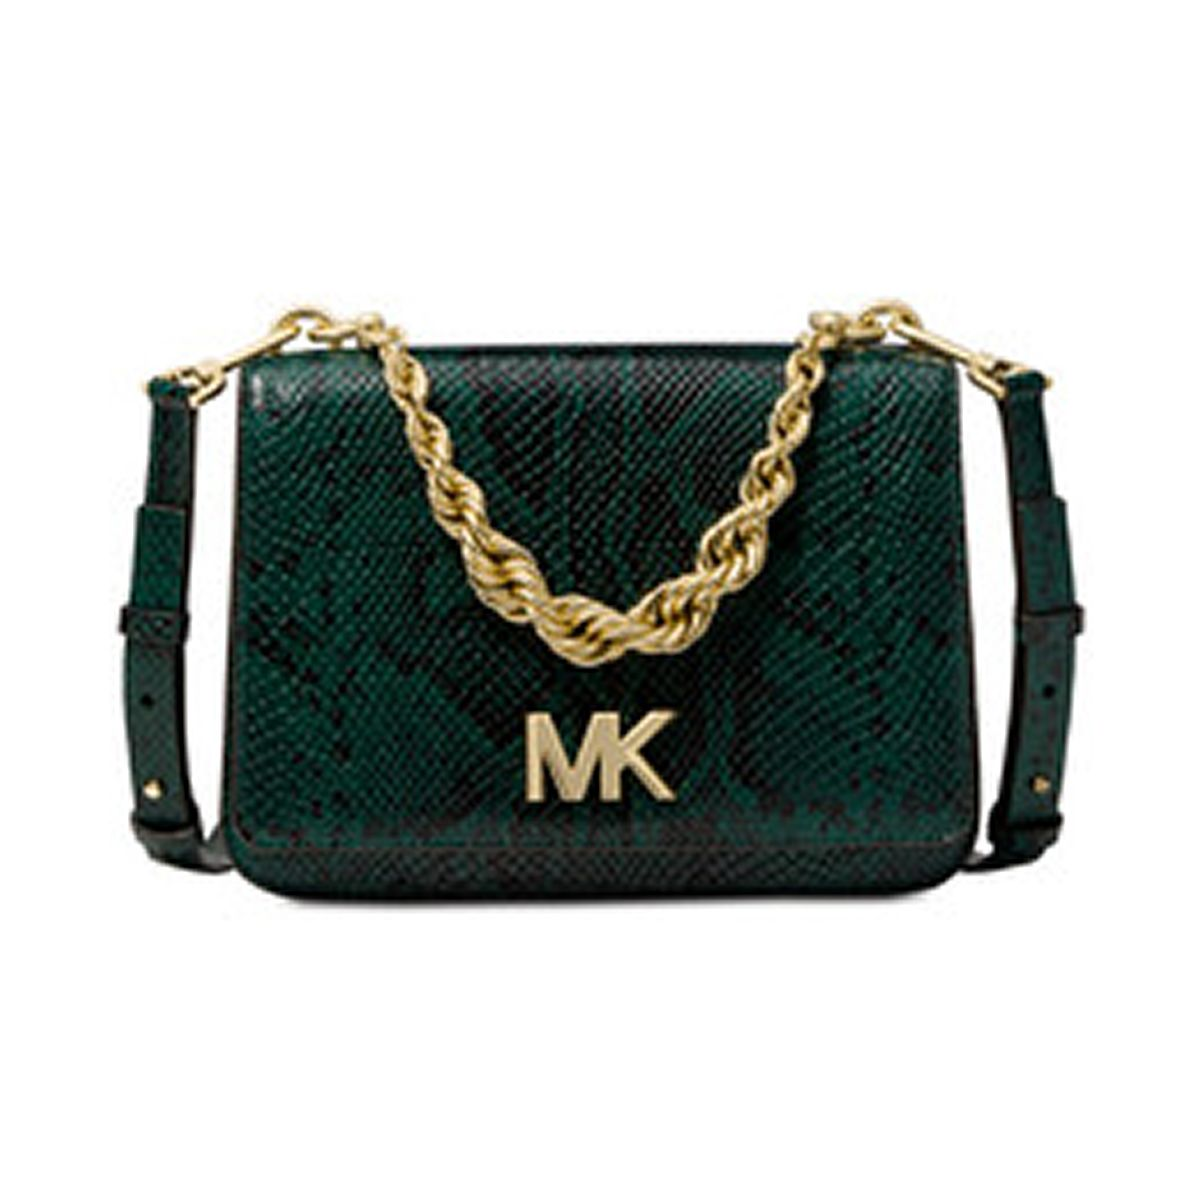 7926499add8d Michael Kors Handbags - Macy s